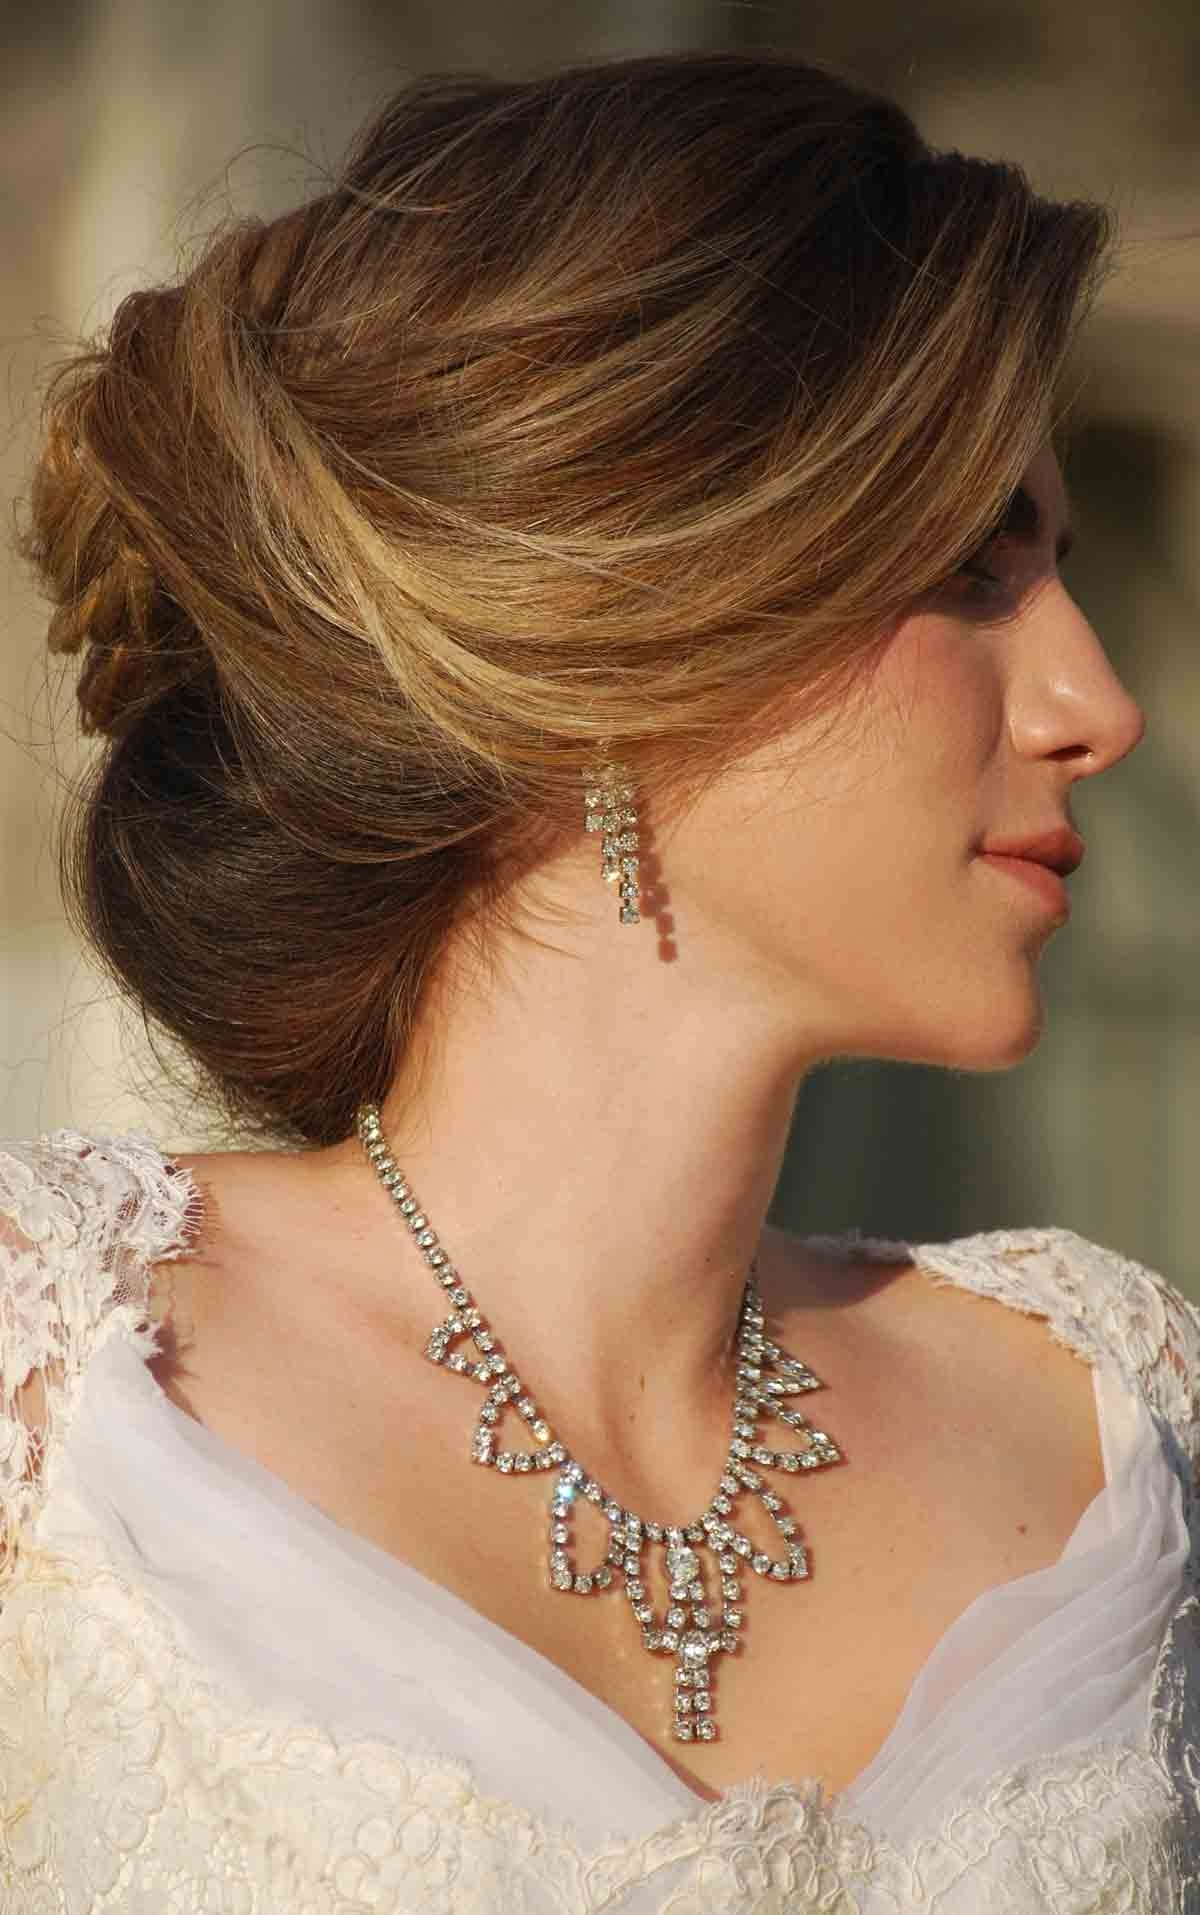 Classy Wedding Mother Of The Bride Hairstyles For Hair Styles For With Favorite Wedding Reception Hairstyles For Guests (View 3 of 15)